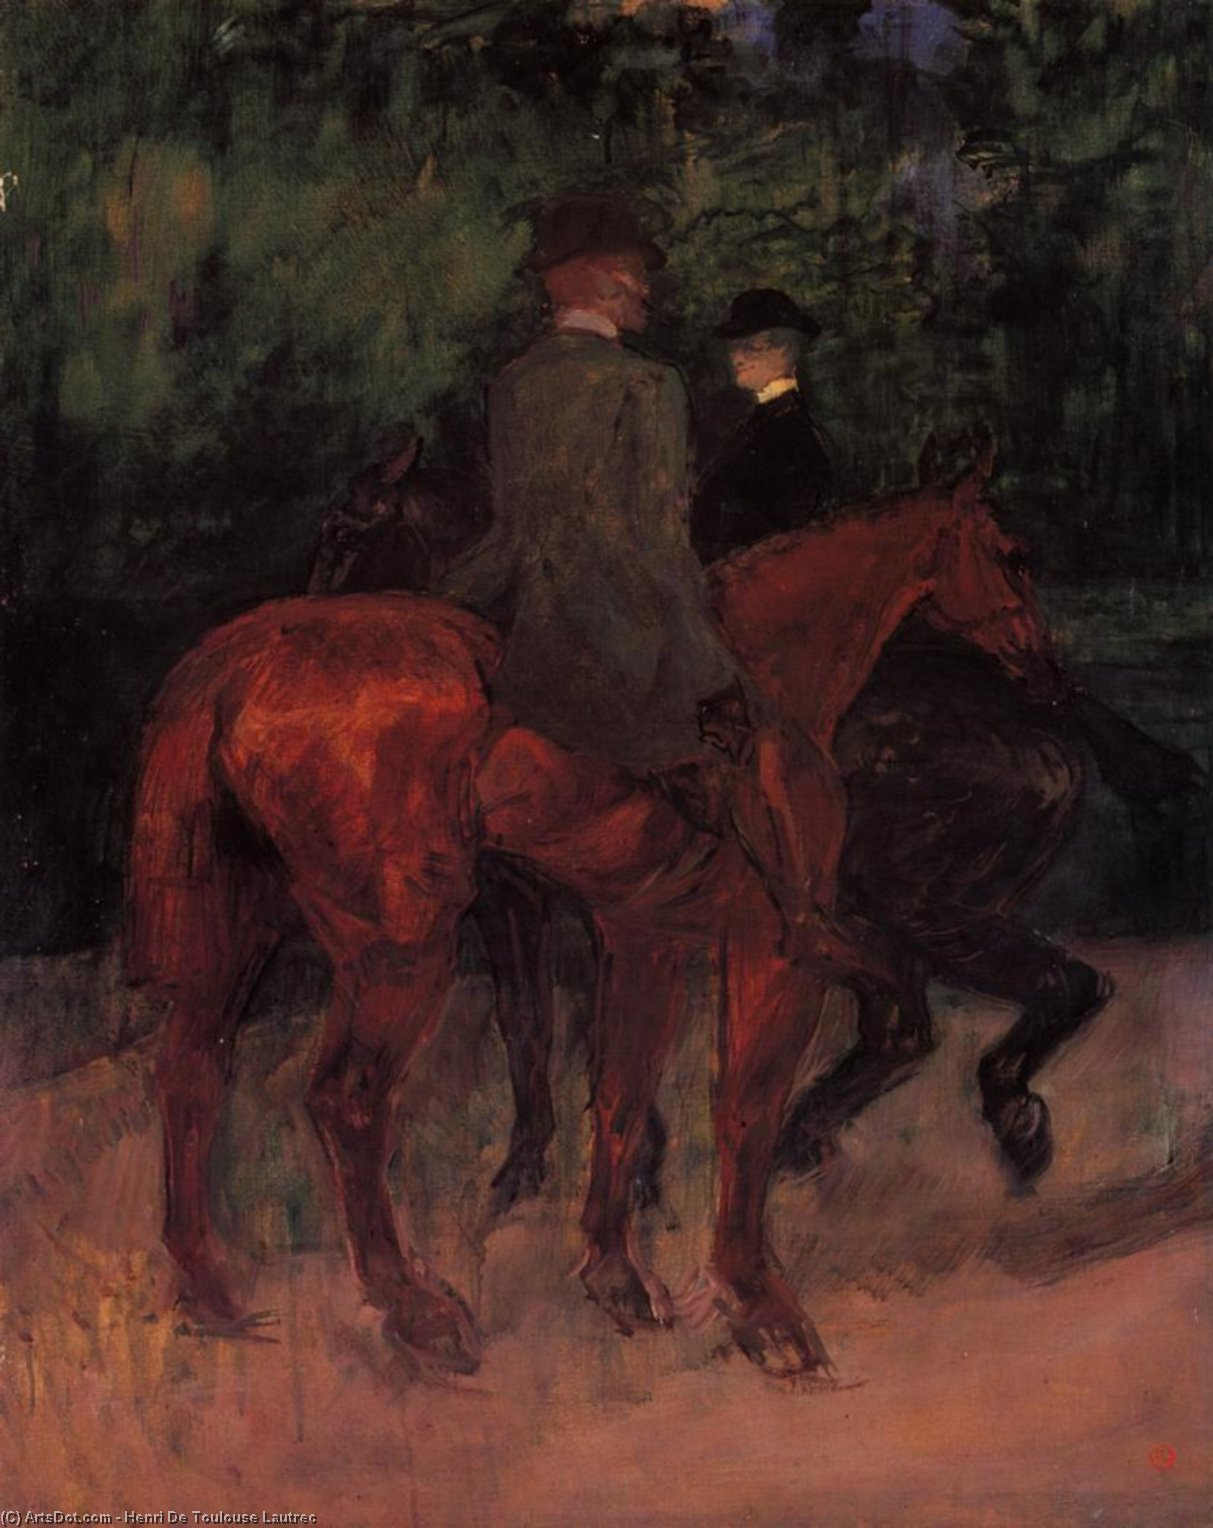 Man and Woman Riding through the Woods, Oil On Canvas by Henri De Toulouse Lautrec (1864-1901, France)